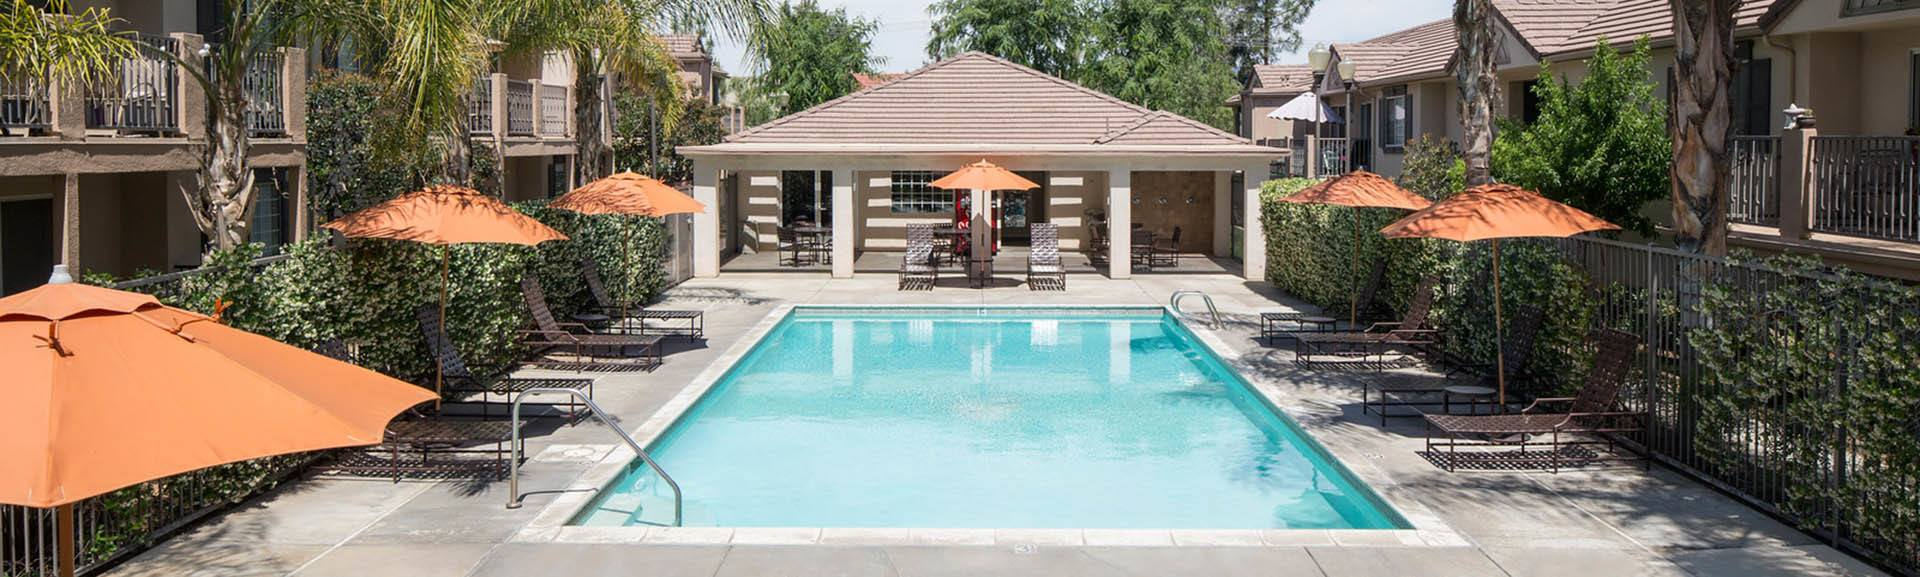 Contact Cypress Villas Apartment Homes on our website